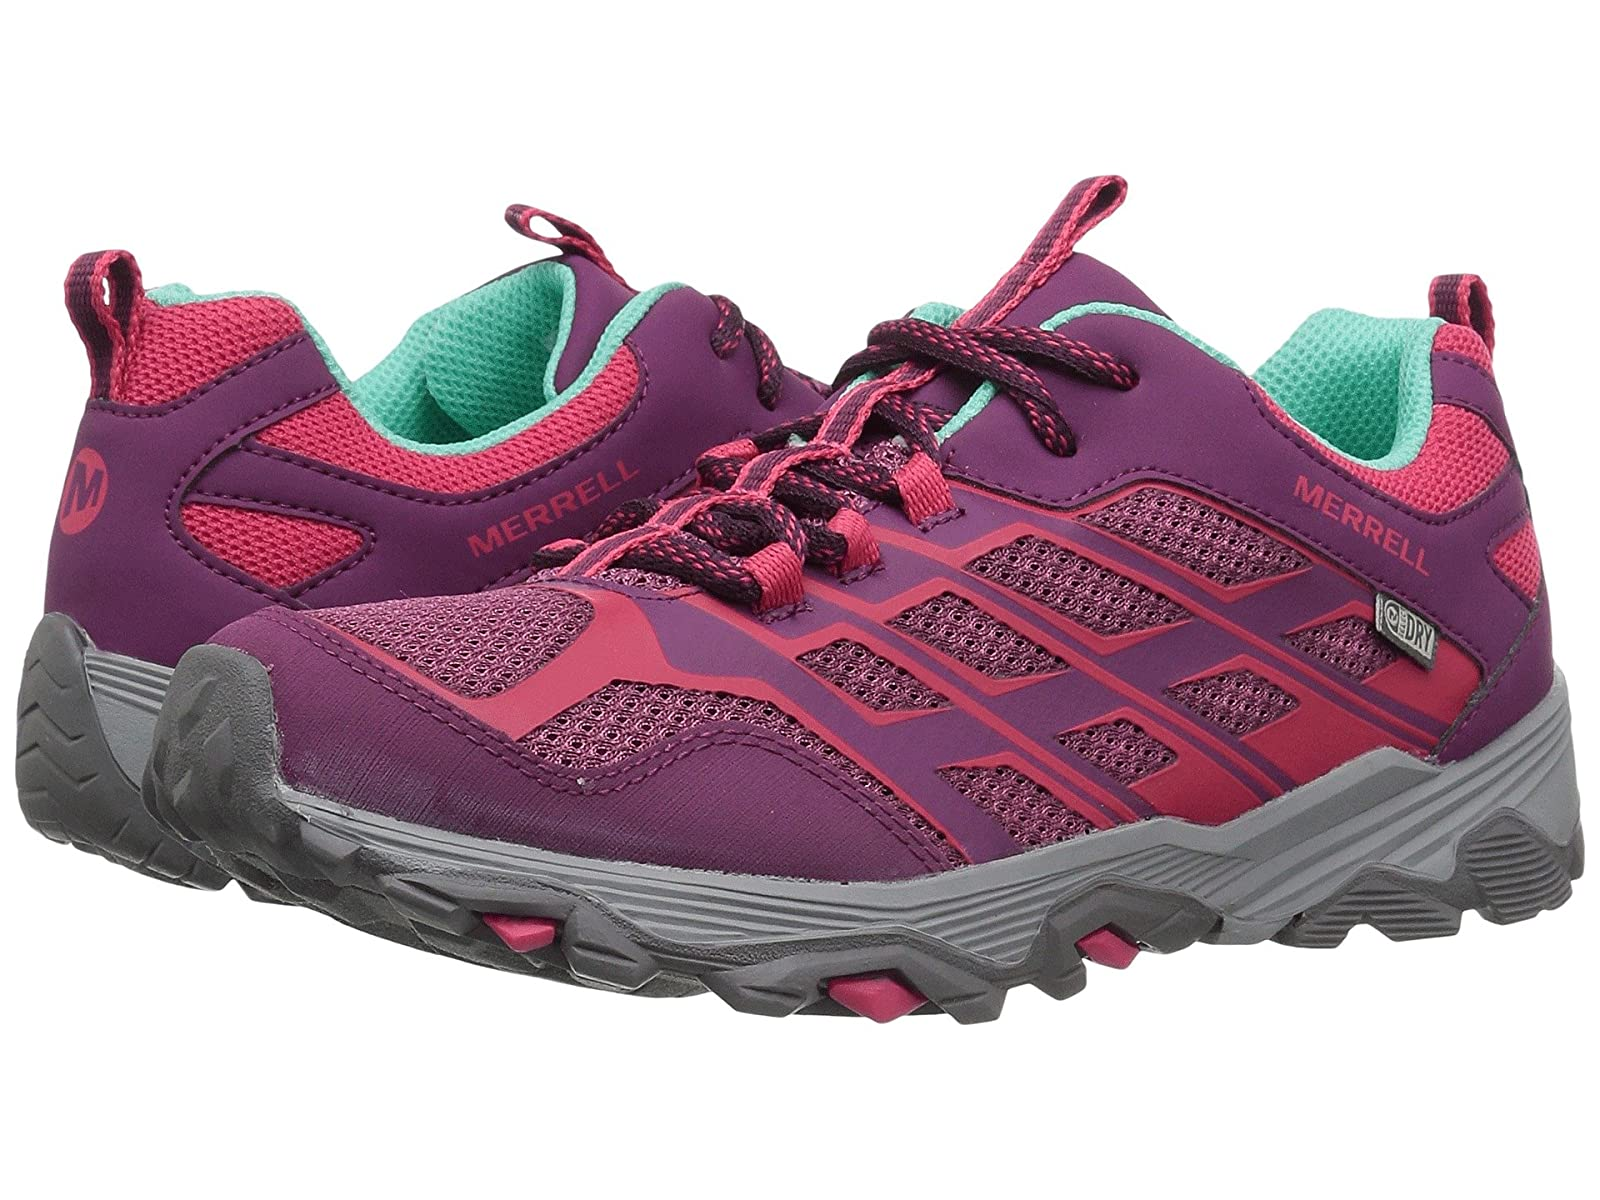 Merrell Kids Moab FST Low Waterproof (Big Kid)Atmospheric grades have affordable shoes